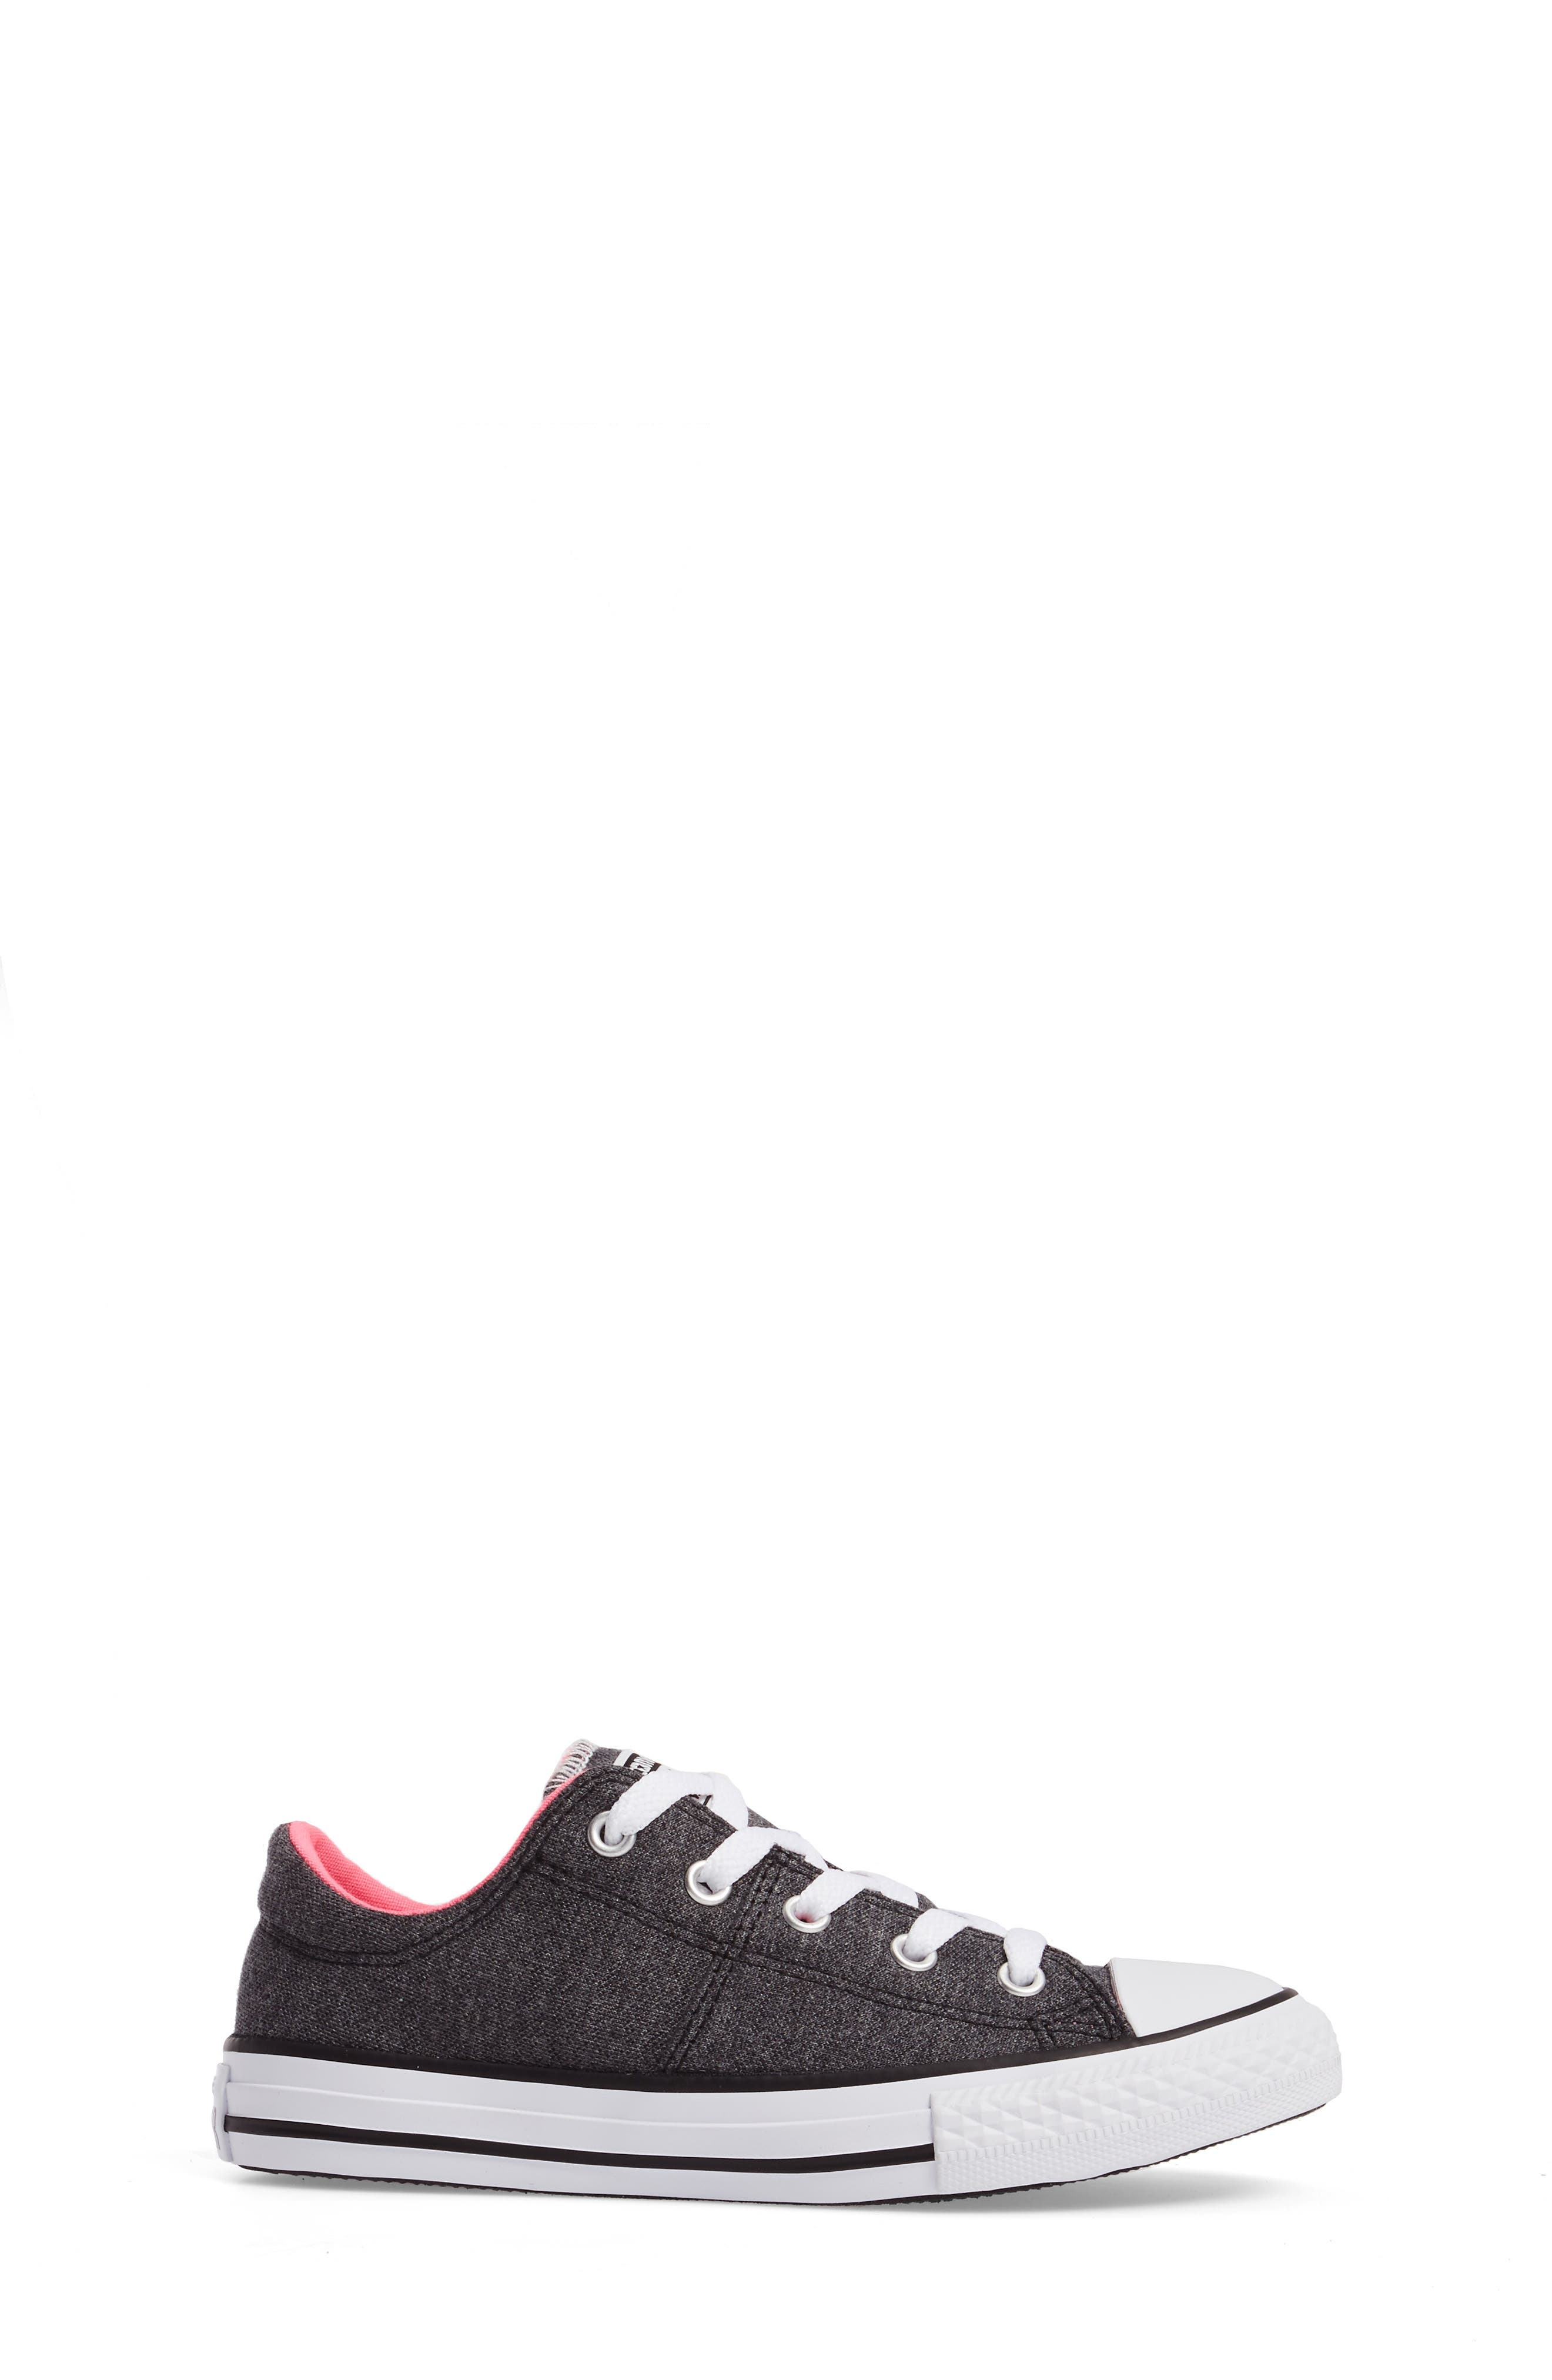 Chuck Taylor<sup>®</sup> All Star<sup>®</sup> Madison Low Top Sneaker,                             Alternate thumbnail 13, color,